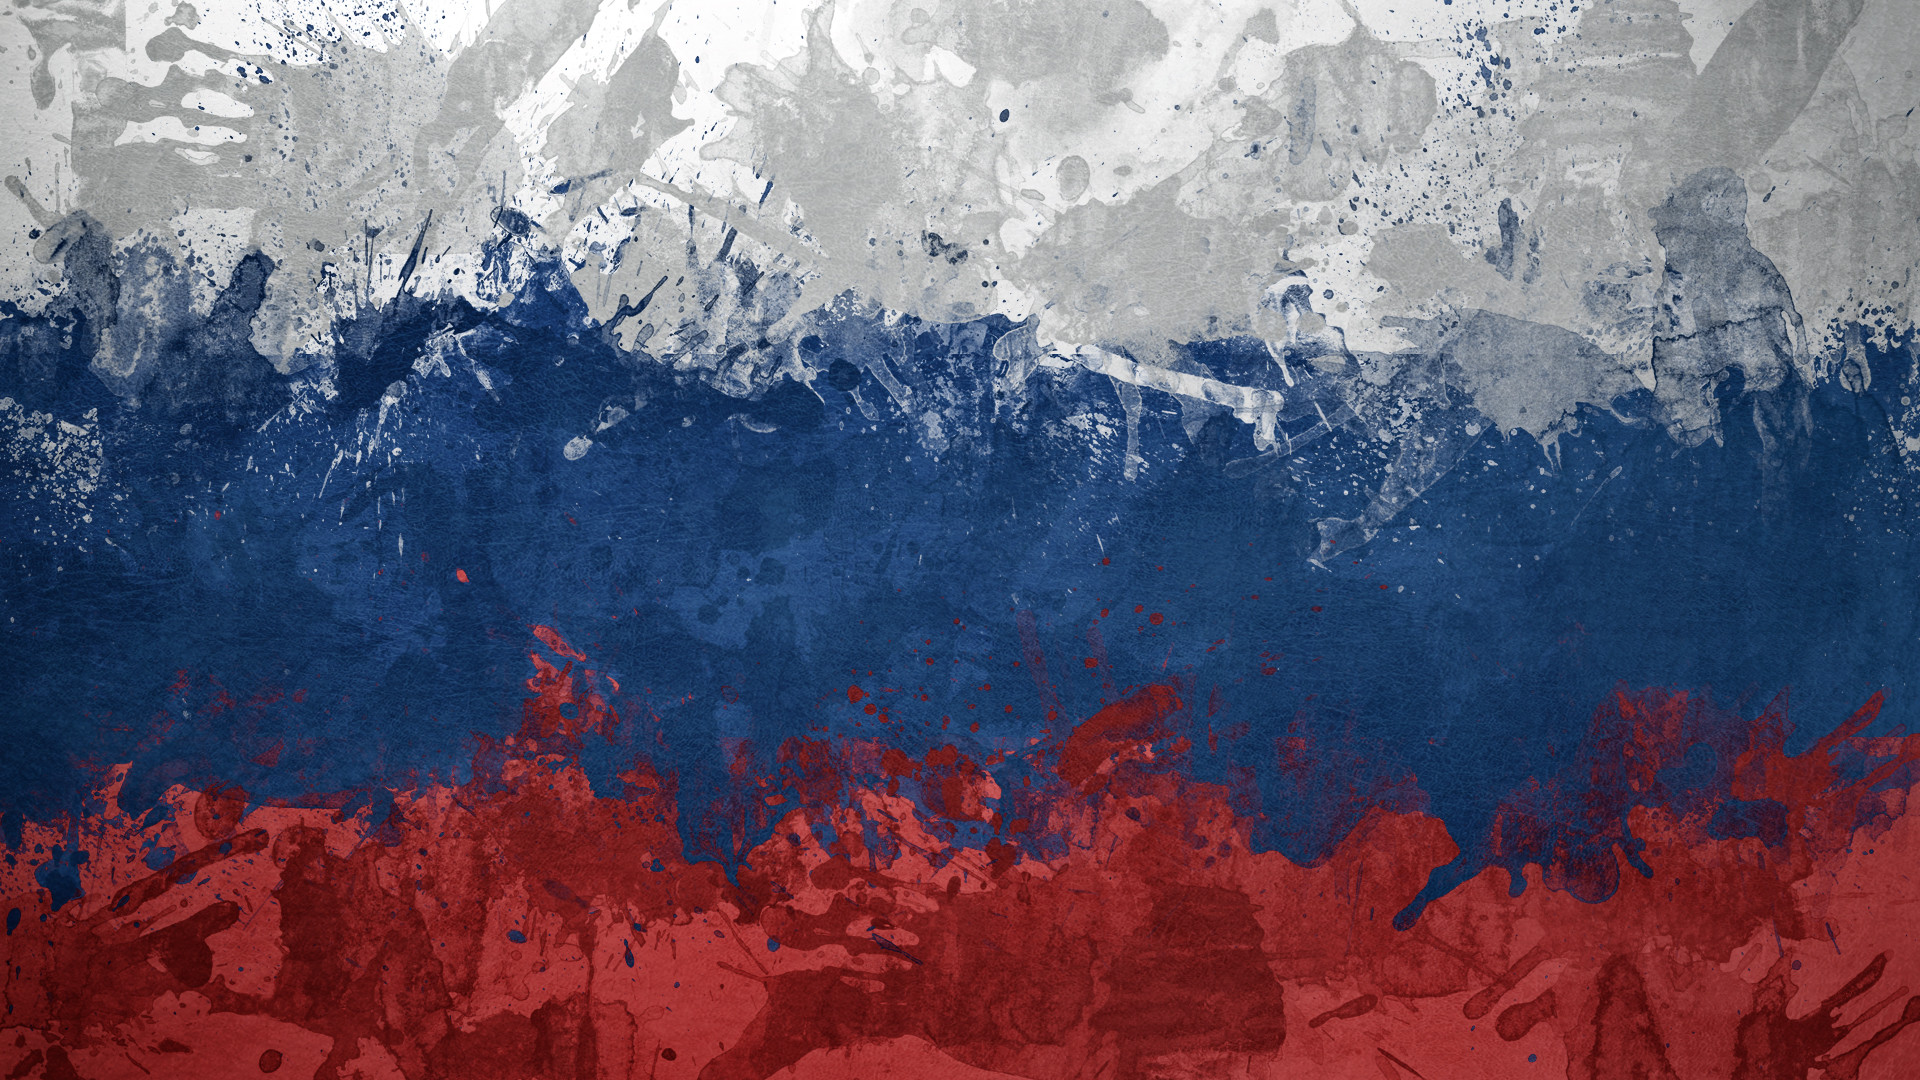 Russian Flag Wallpaper by me Download.